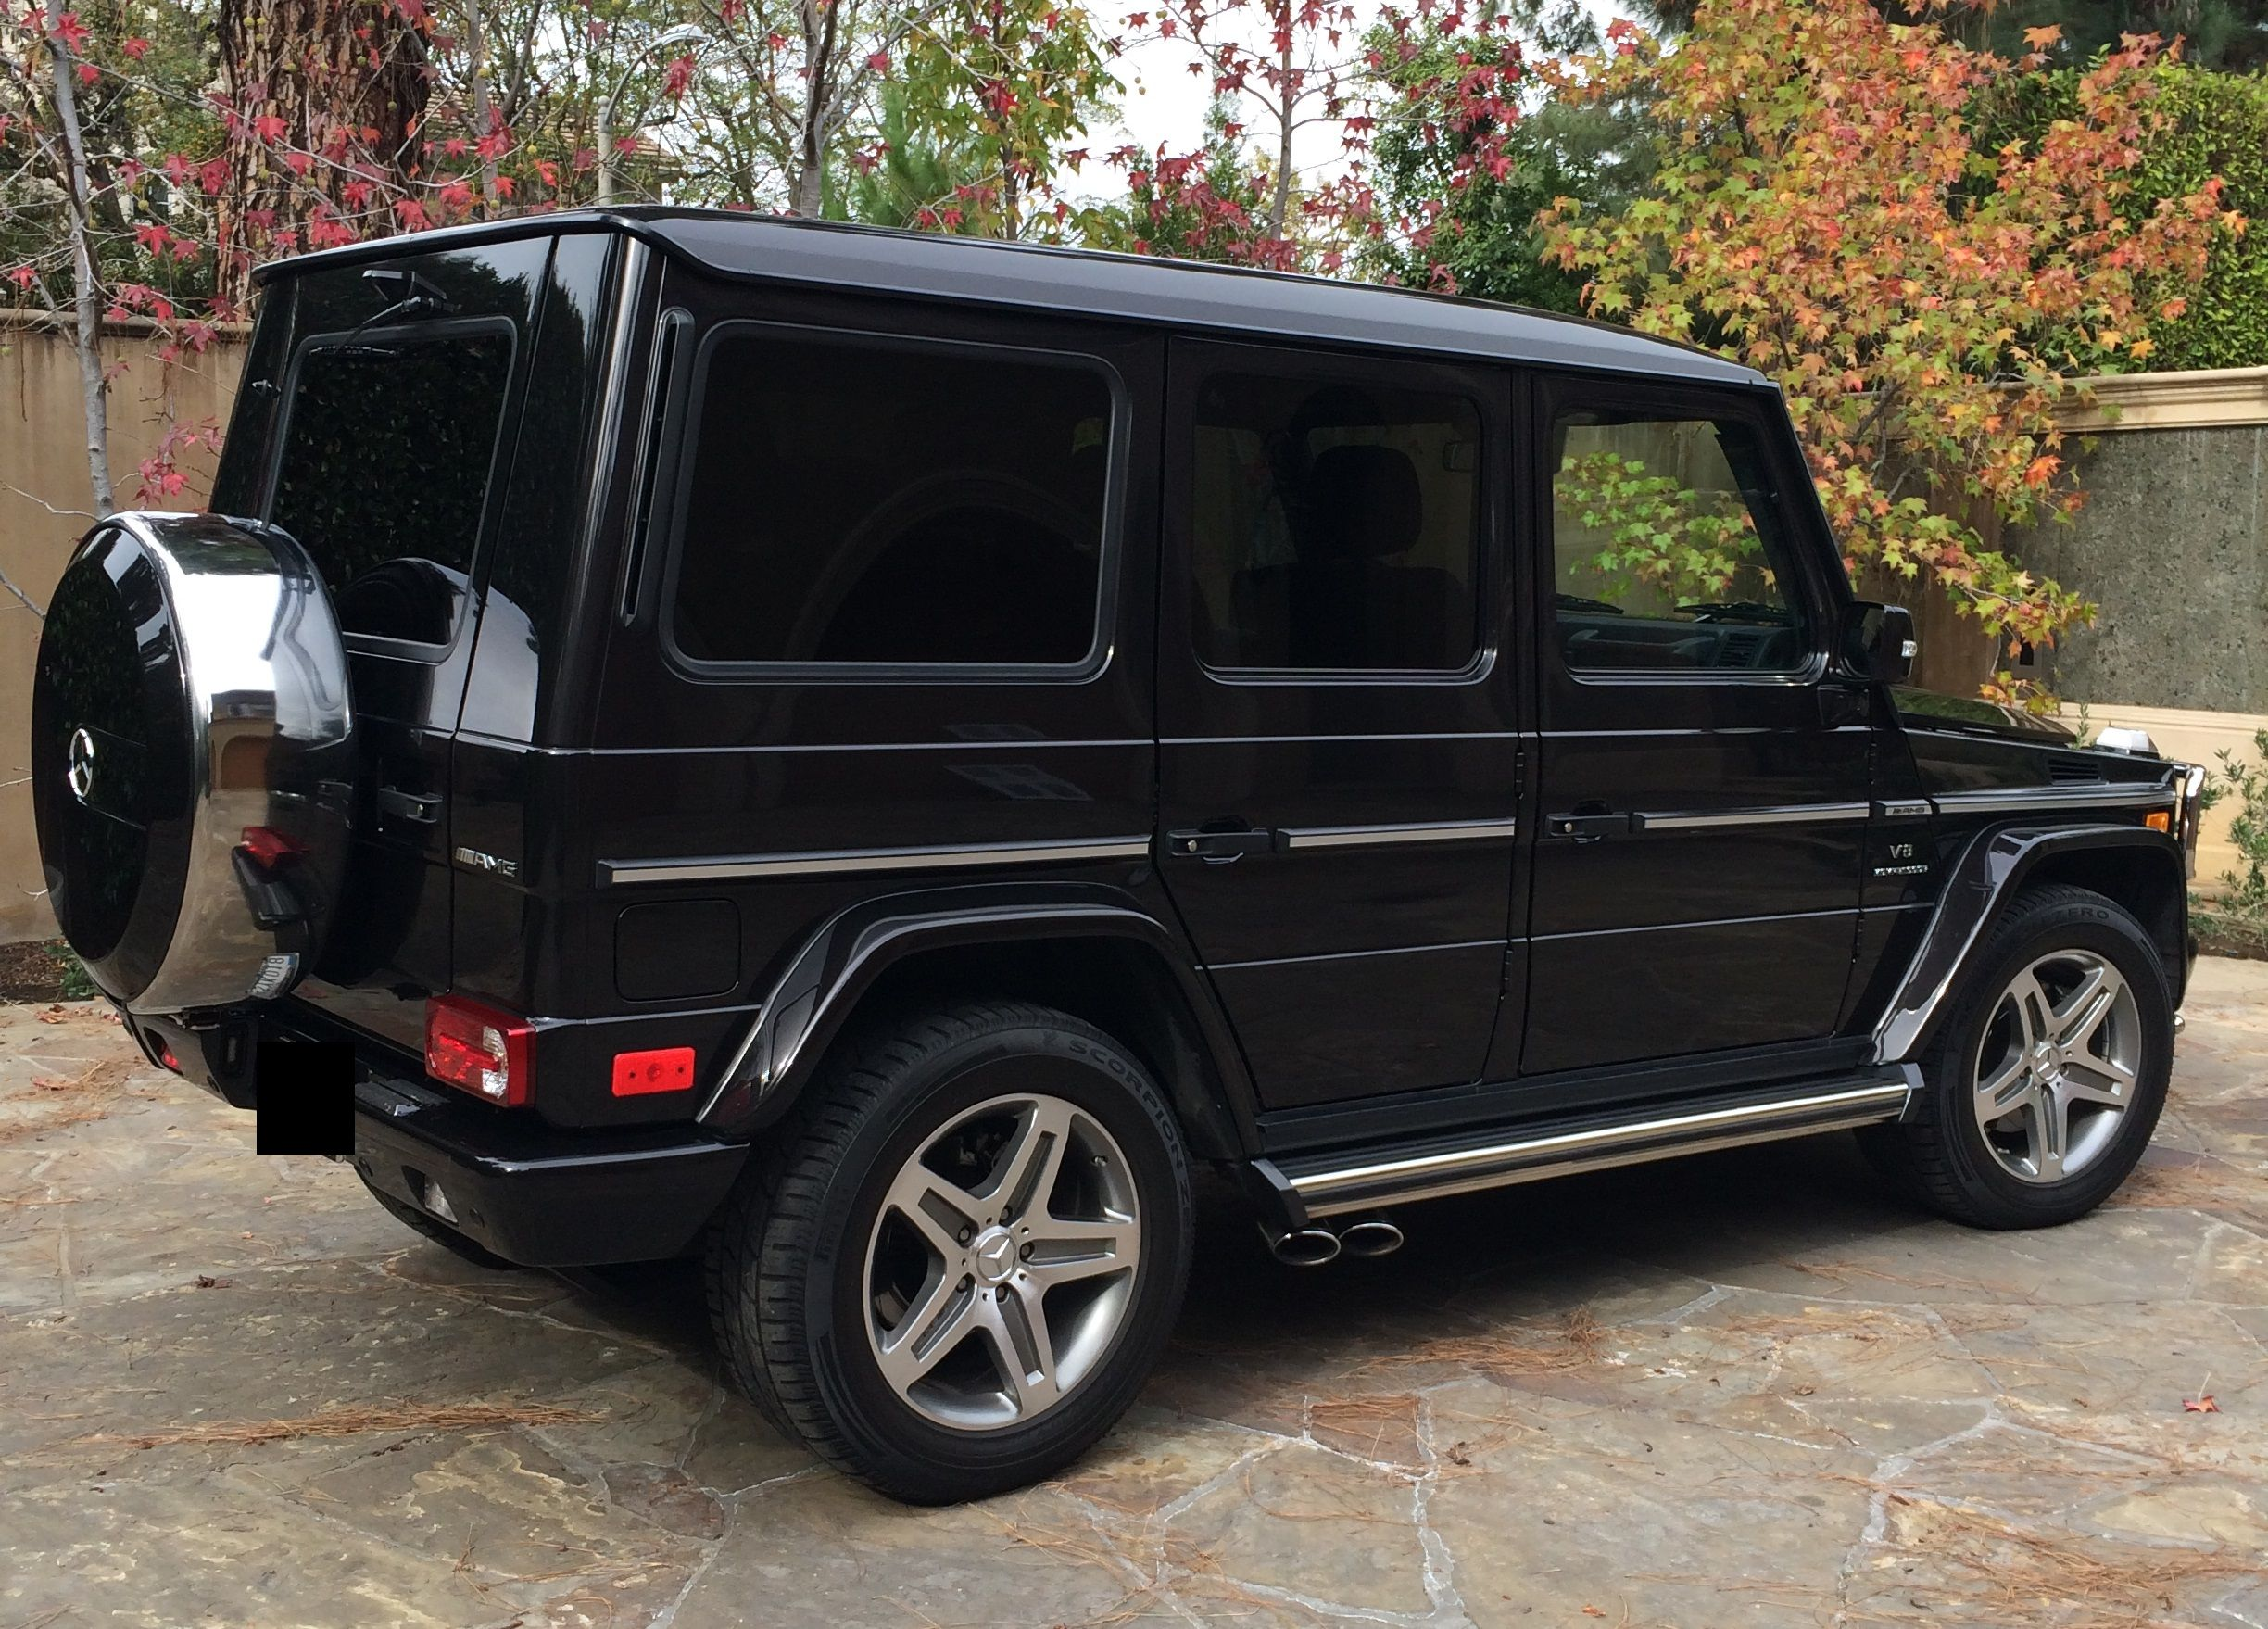 187 2011 Mercedes G55 Amg Low Low Miles Exotic Car Search